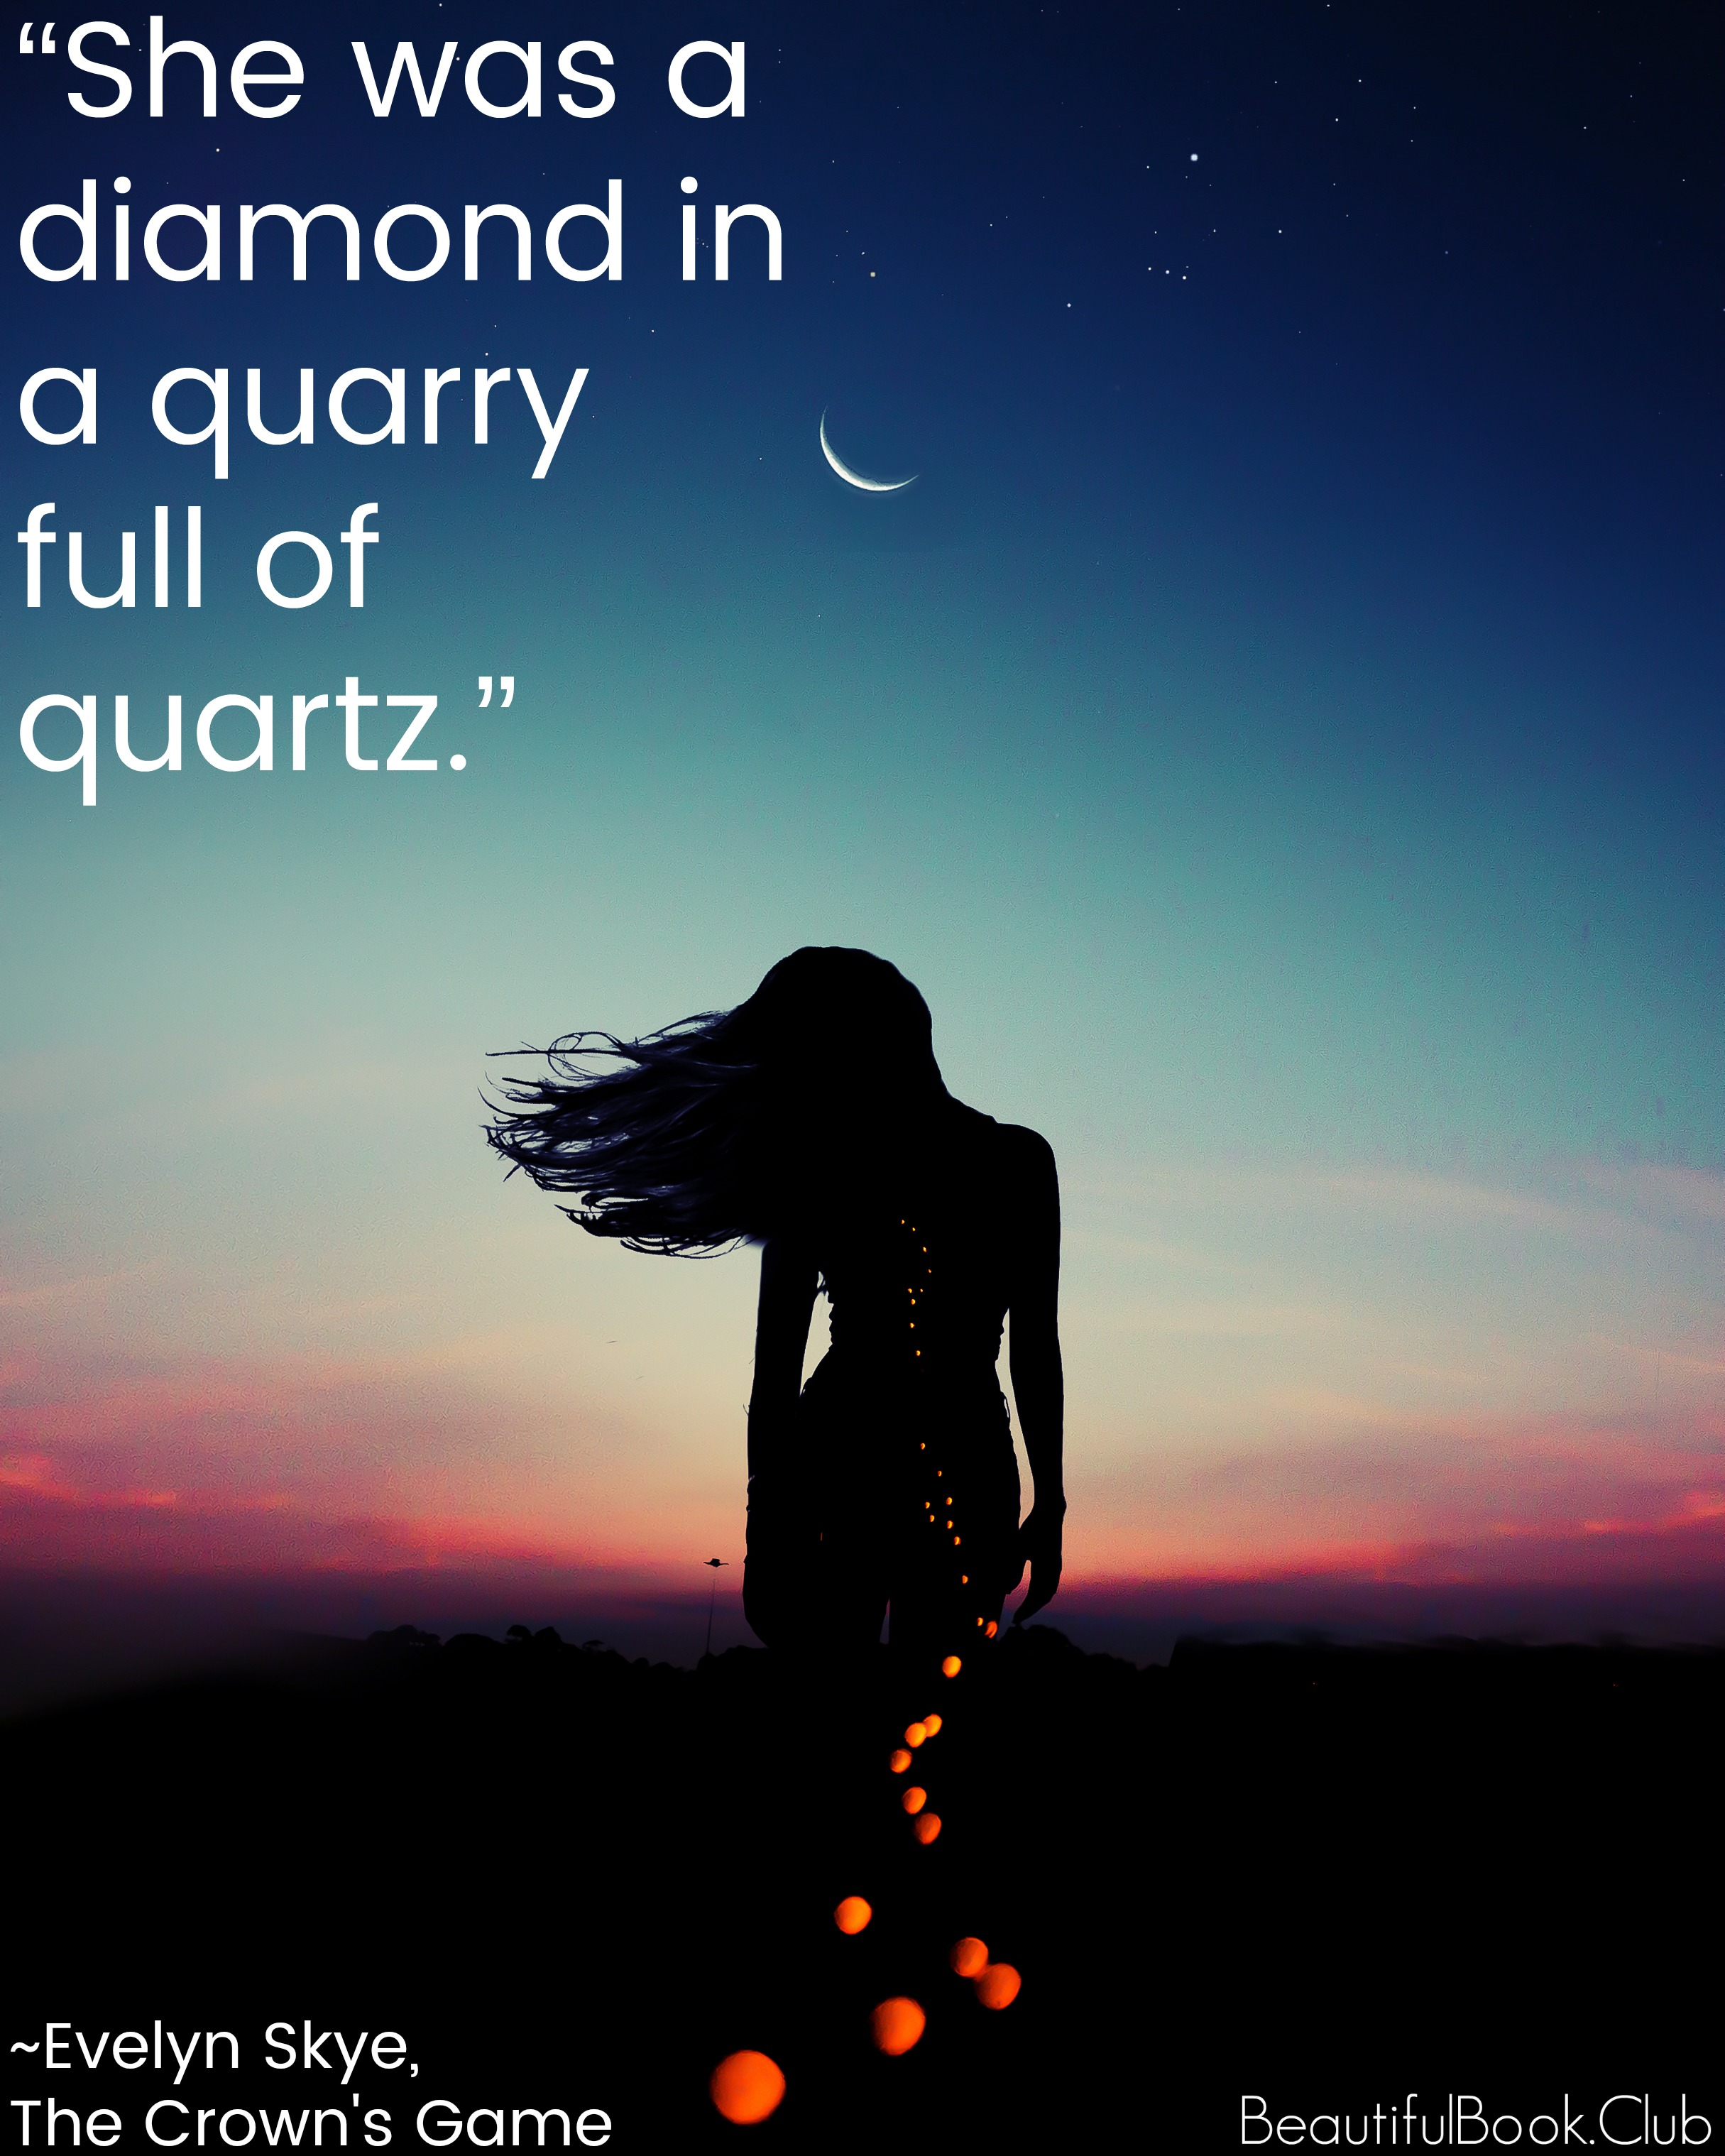 """She was a diamond in a quarry full of quartz."" quote _Evelyn Skye, The Crown's Game"